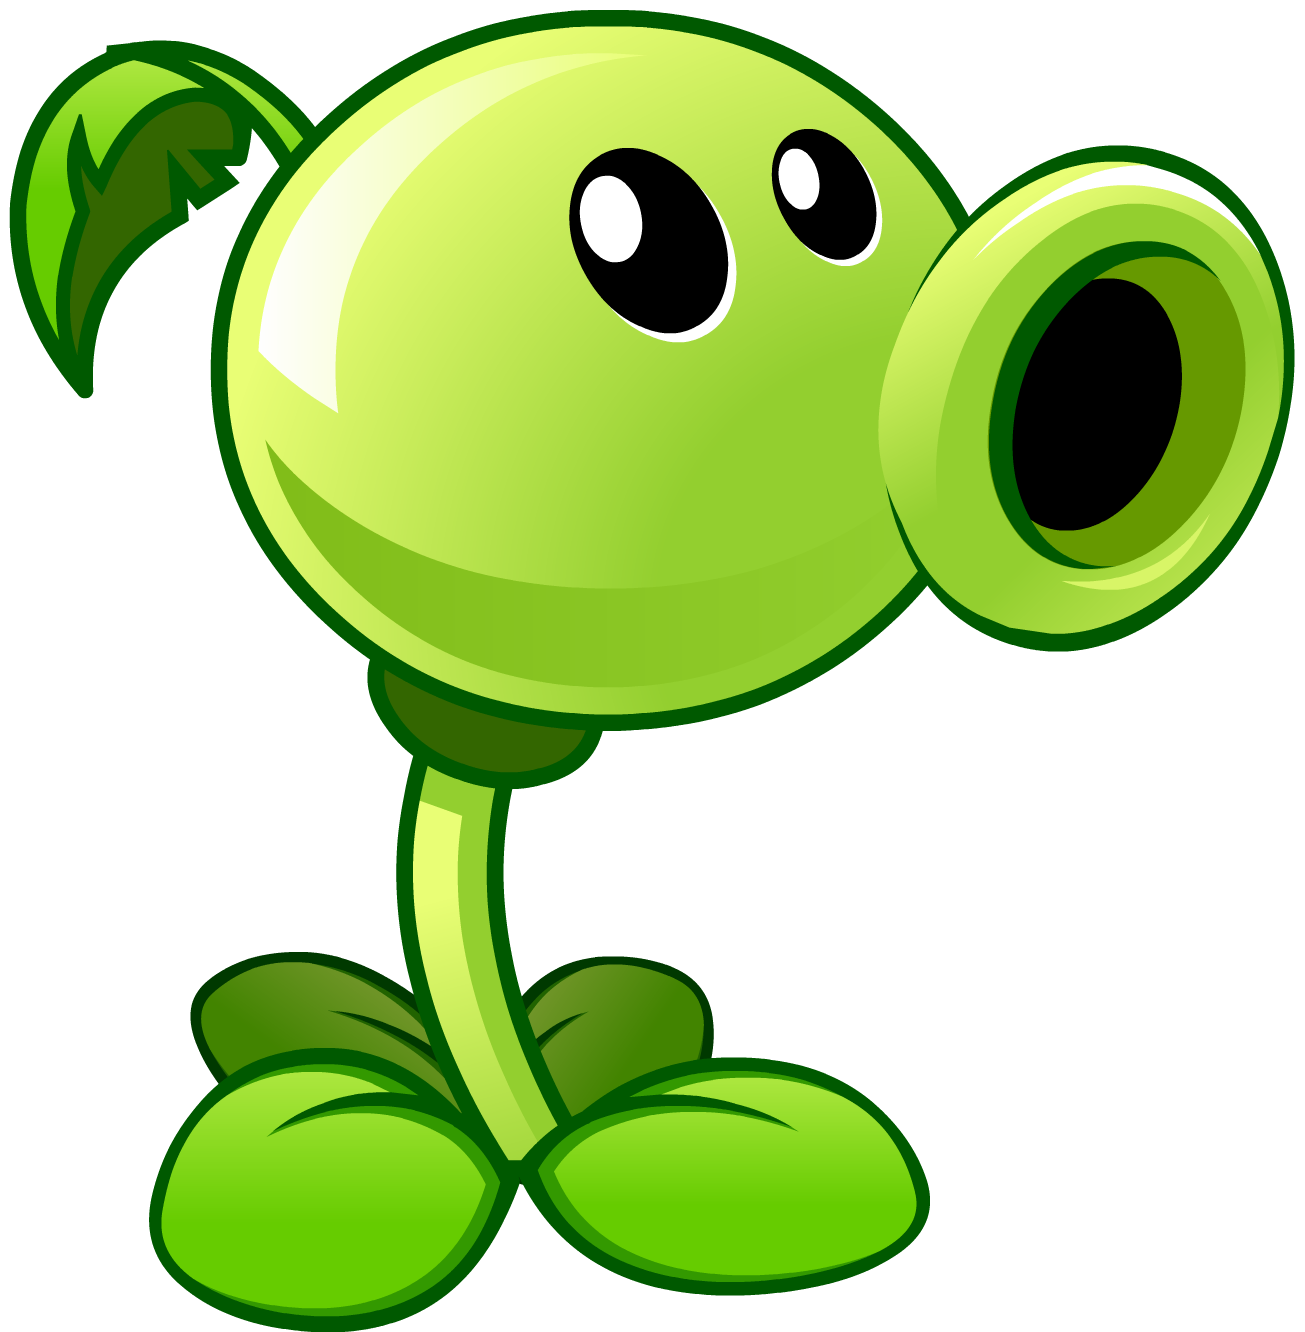 plants vs zombies coloring pages peashooter - the gallery for sunflower peashooter plants vs zombies